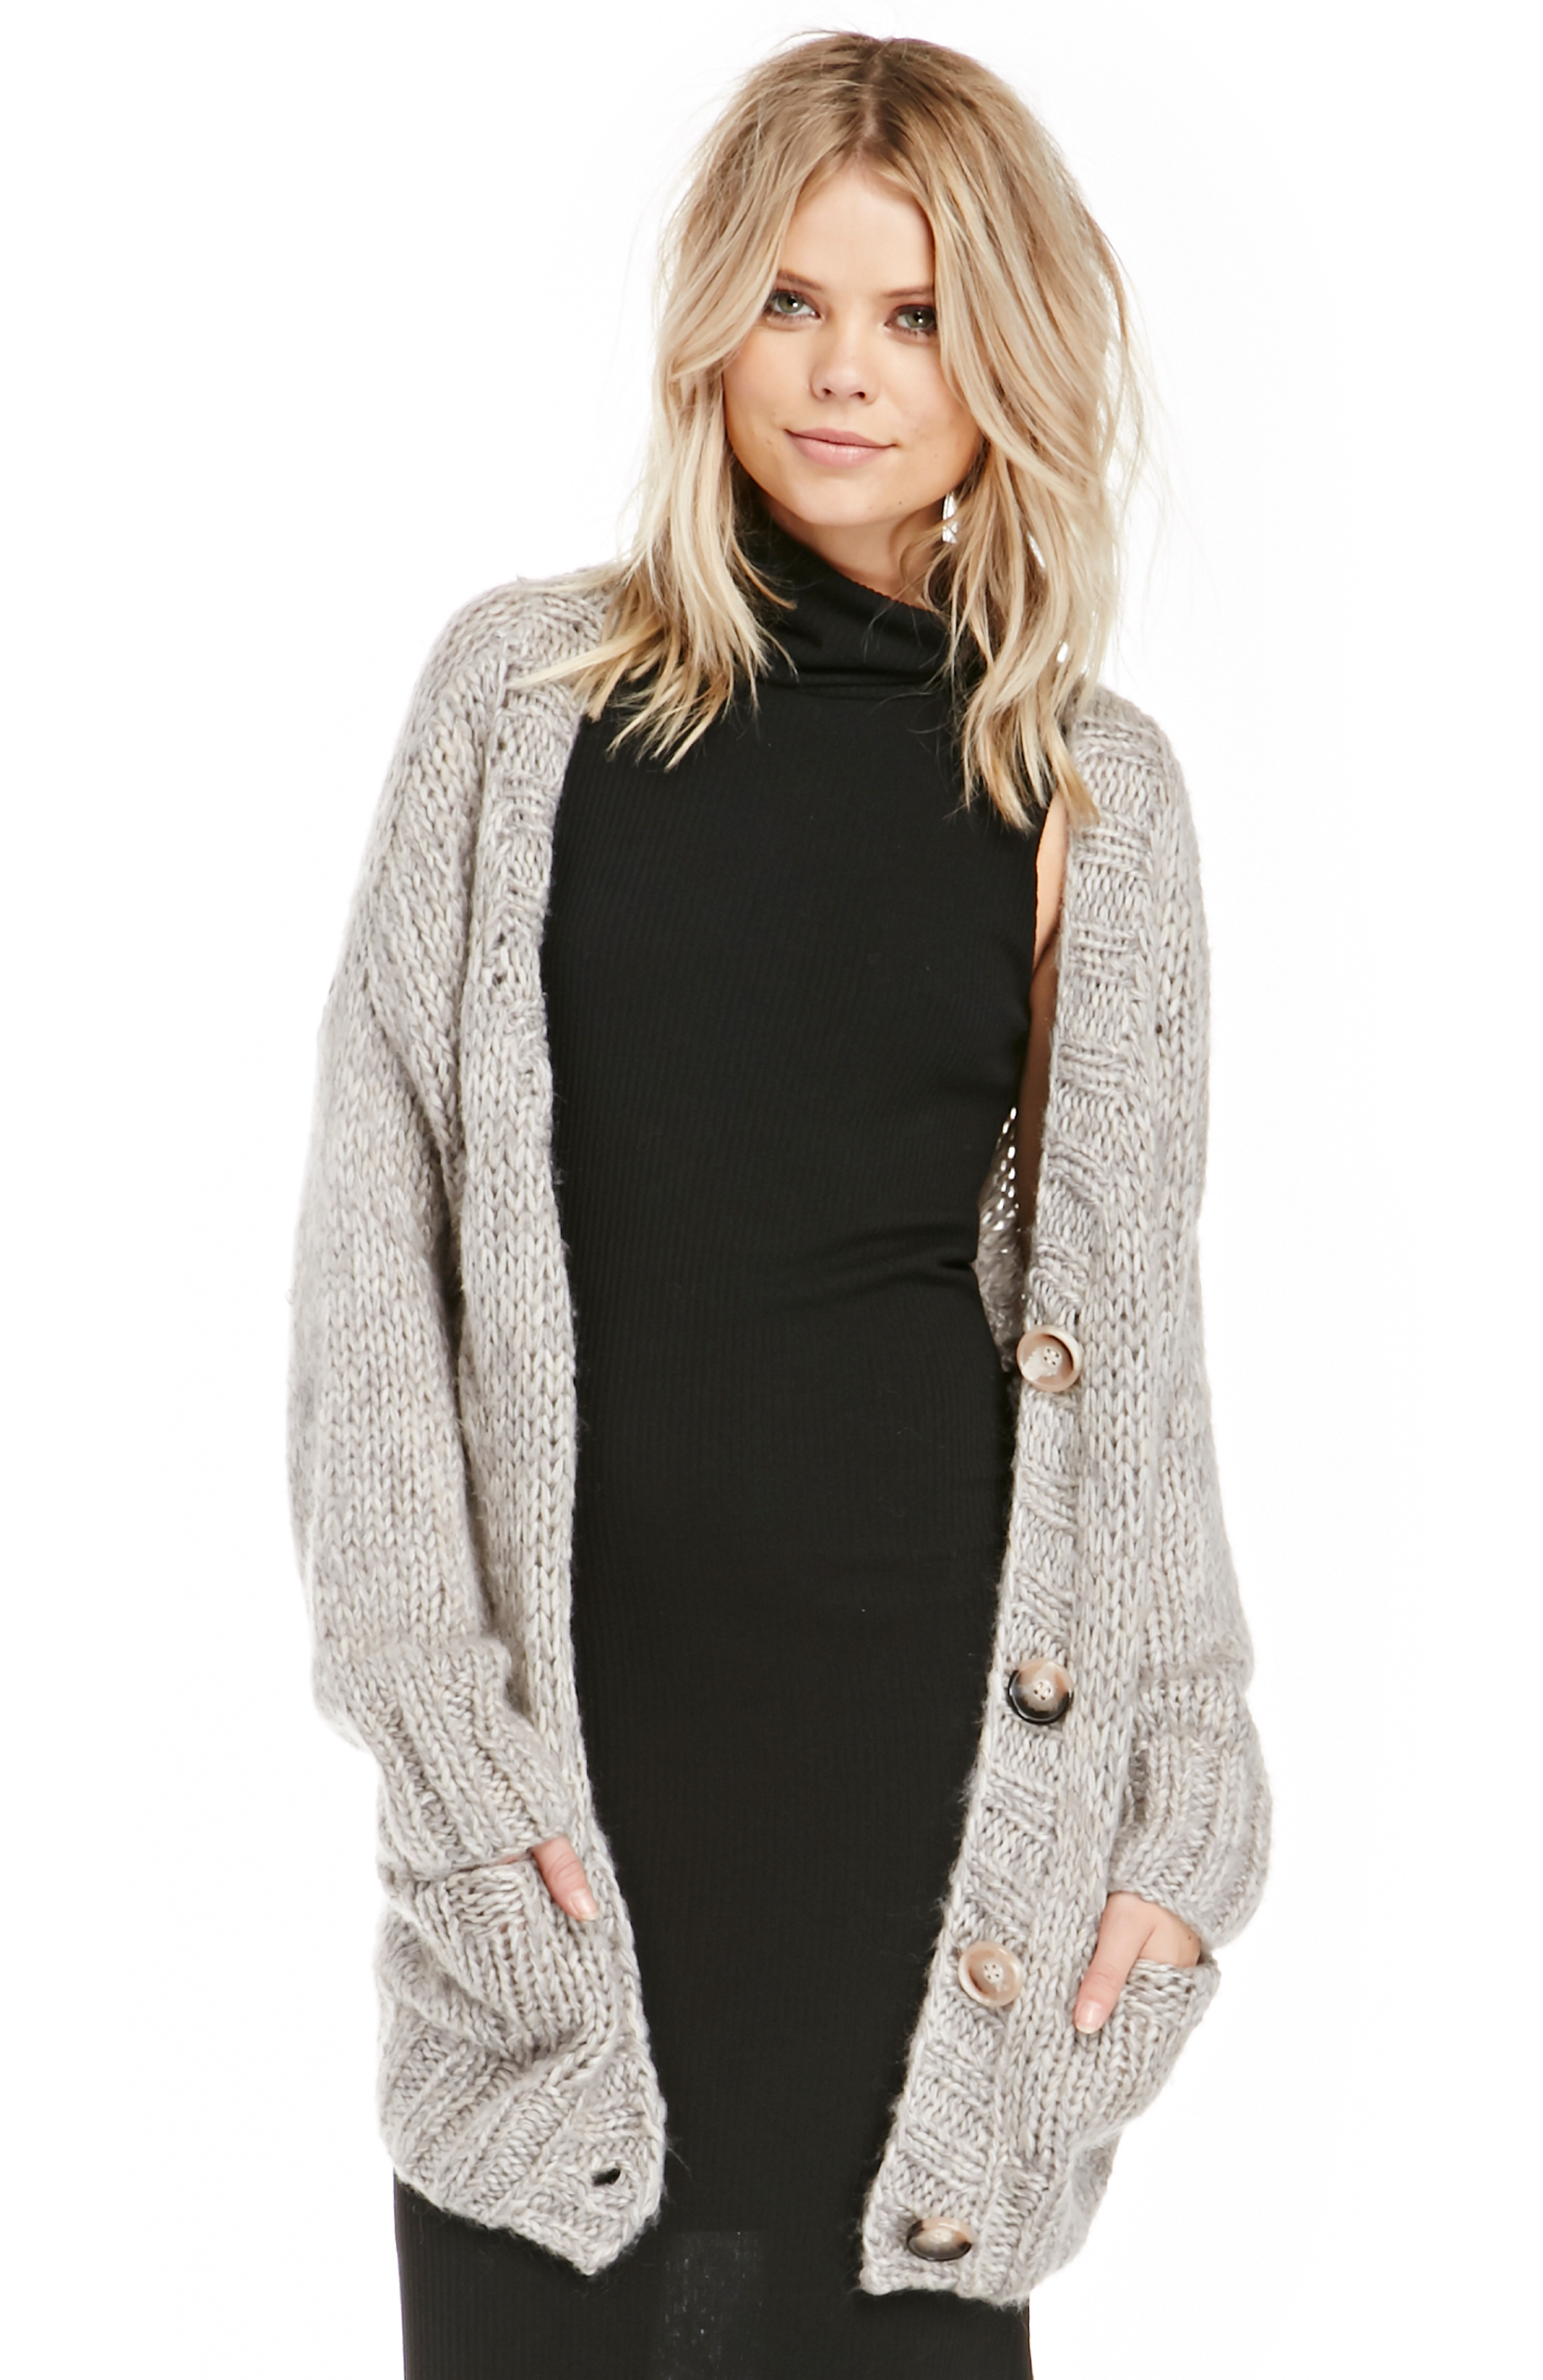 Contemporaine exclusive Fashionable minimalist, longline cardigan for a layered look this season Loose fit with drop shoulders Thick cotton-blend knit The model is wearing size small.